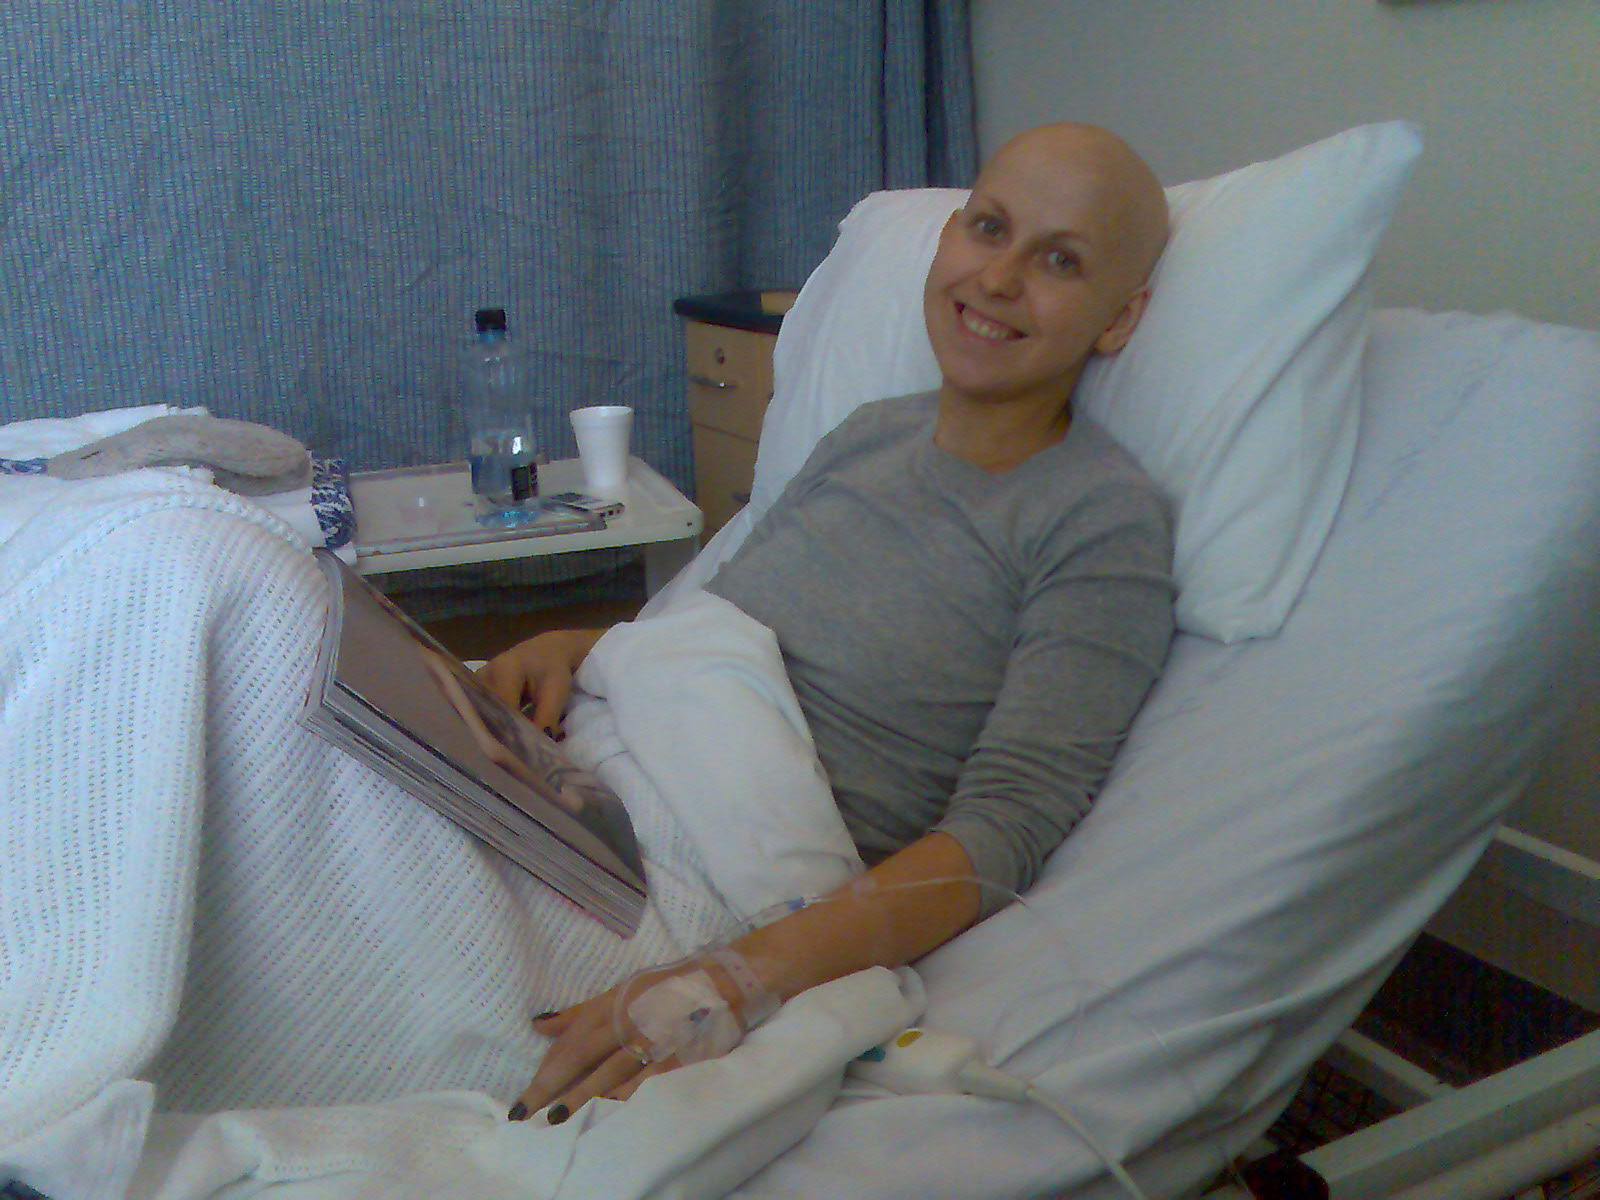 THE DESPERATION OF CANCER PATIENTS